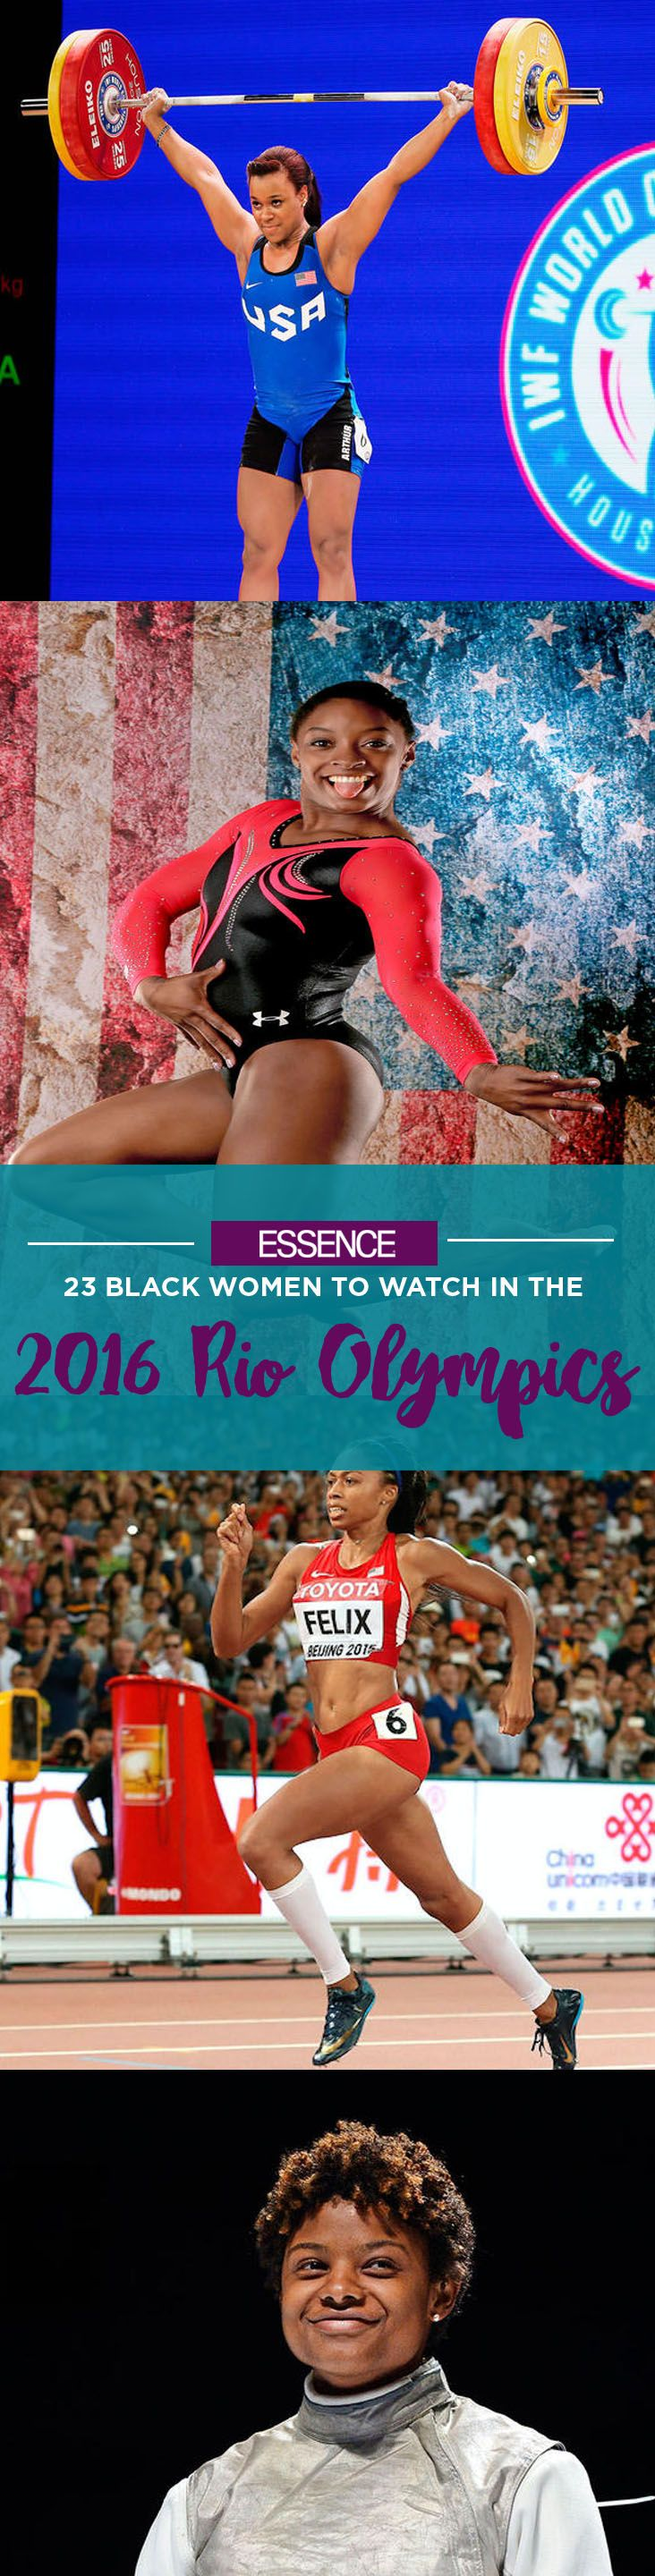 As Team USA heads to the Rio games, Black female athletes are ready to dominate their sports. Many will break records, create memorable moments or simply inspire. We've selected some of the most extraordinary women, both American and from abroad, who are already doing just that. #BlackGirlMagic